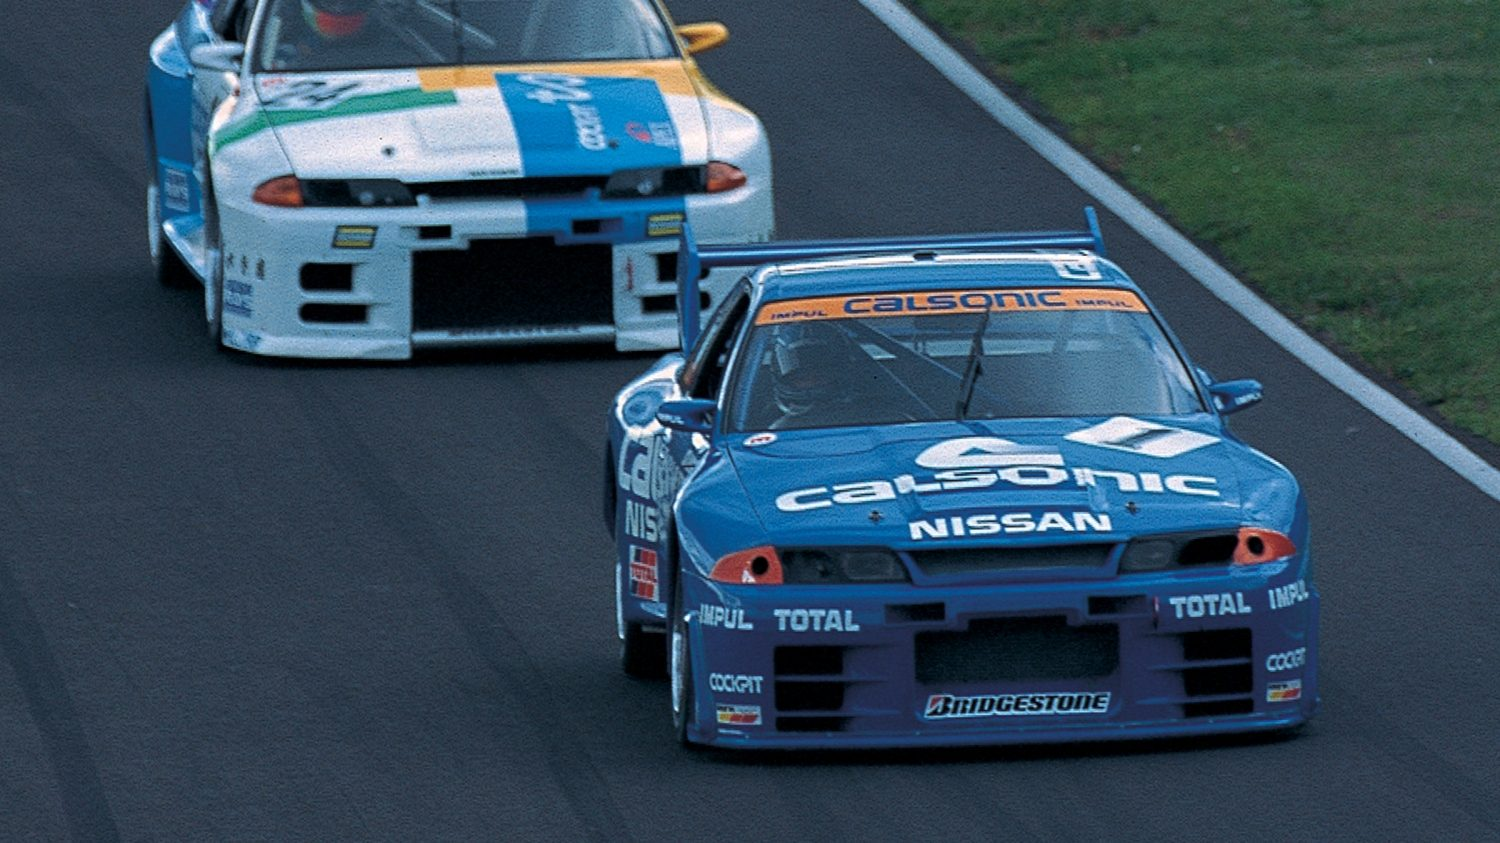 Nissan GT-R Nismo Calsonic on the track